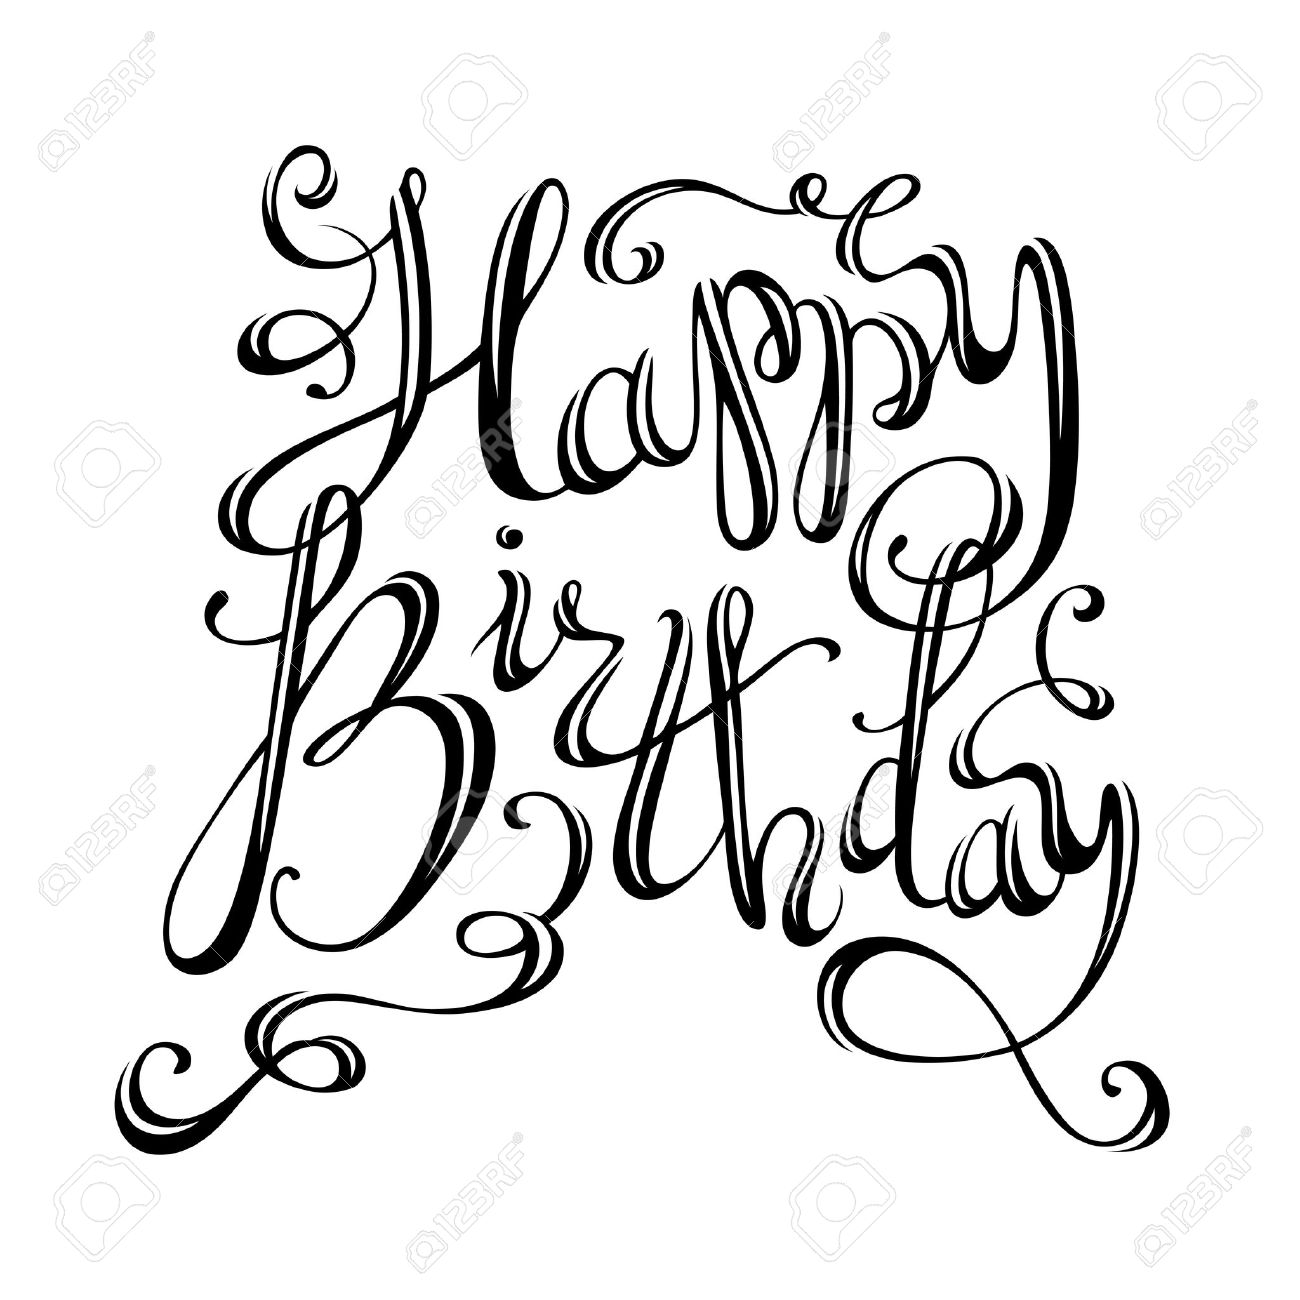 Happy Birthday Lettering Vector Hand Written Isolated Phrase For Greeting Cards And Print Invitations